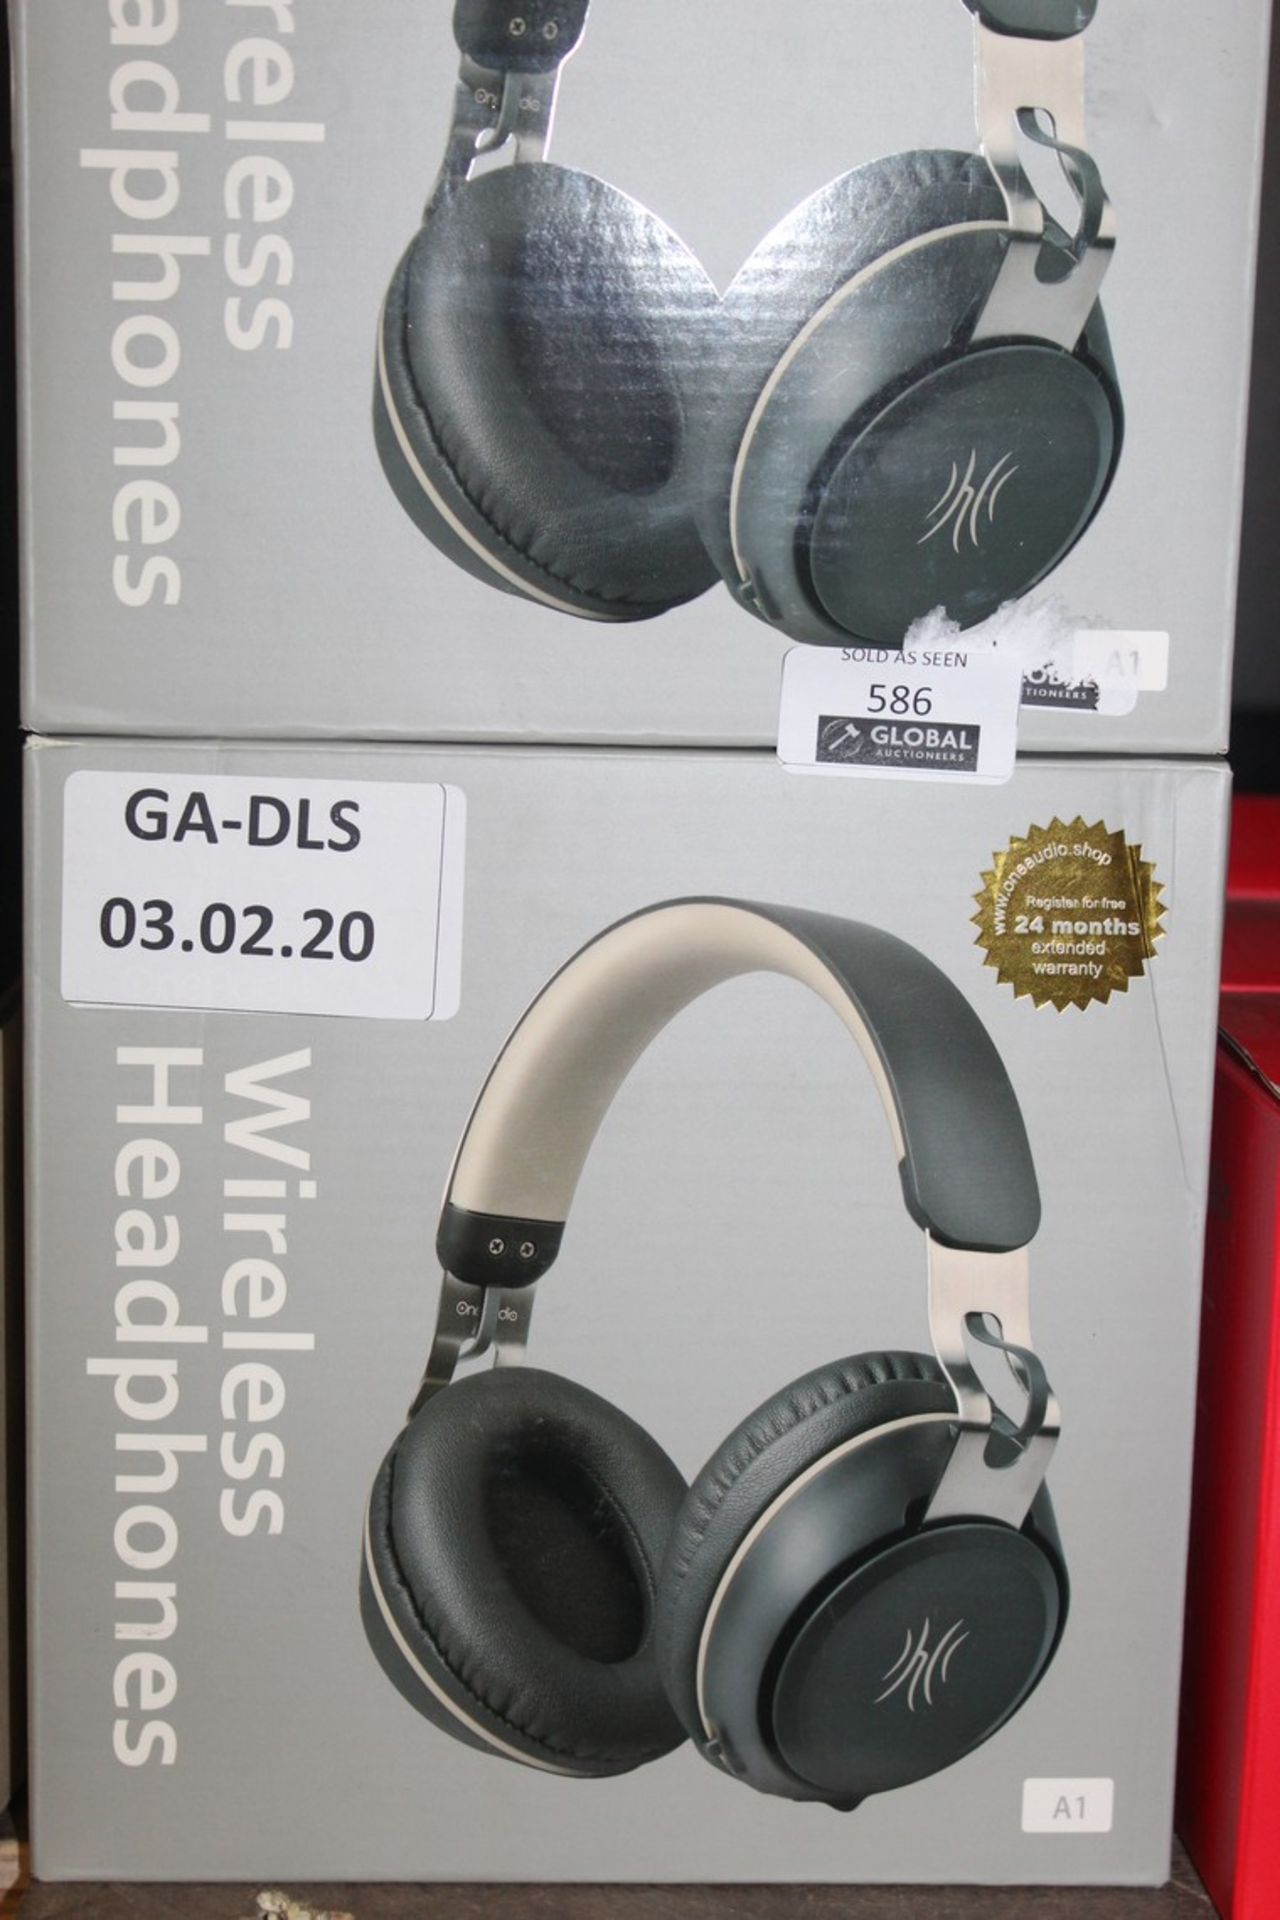 Lot 586 - Boxed Brand New OneOdio A1 Beige and Black Wireless Headphones RRP £30 Each